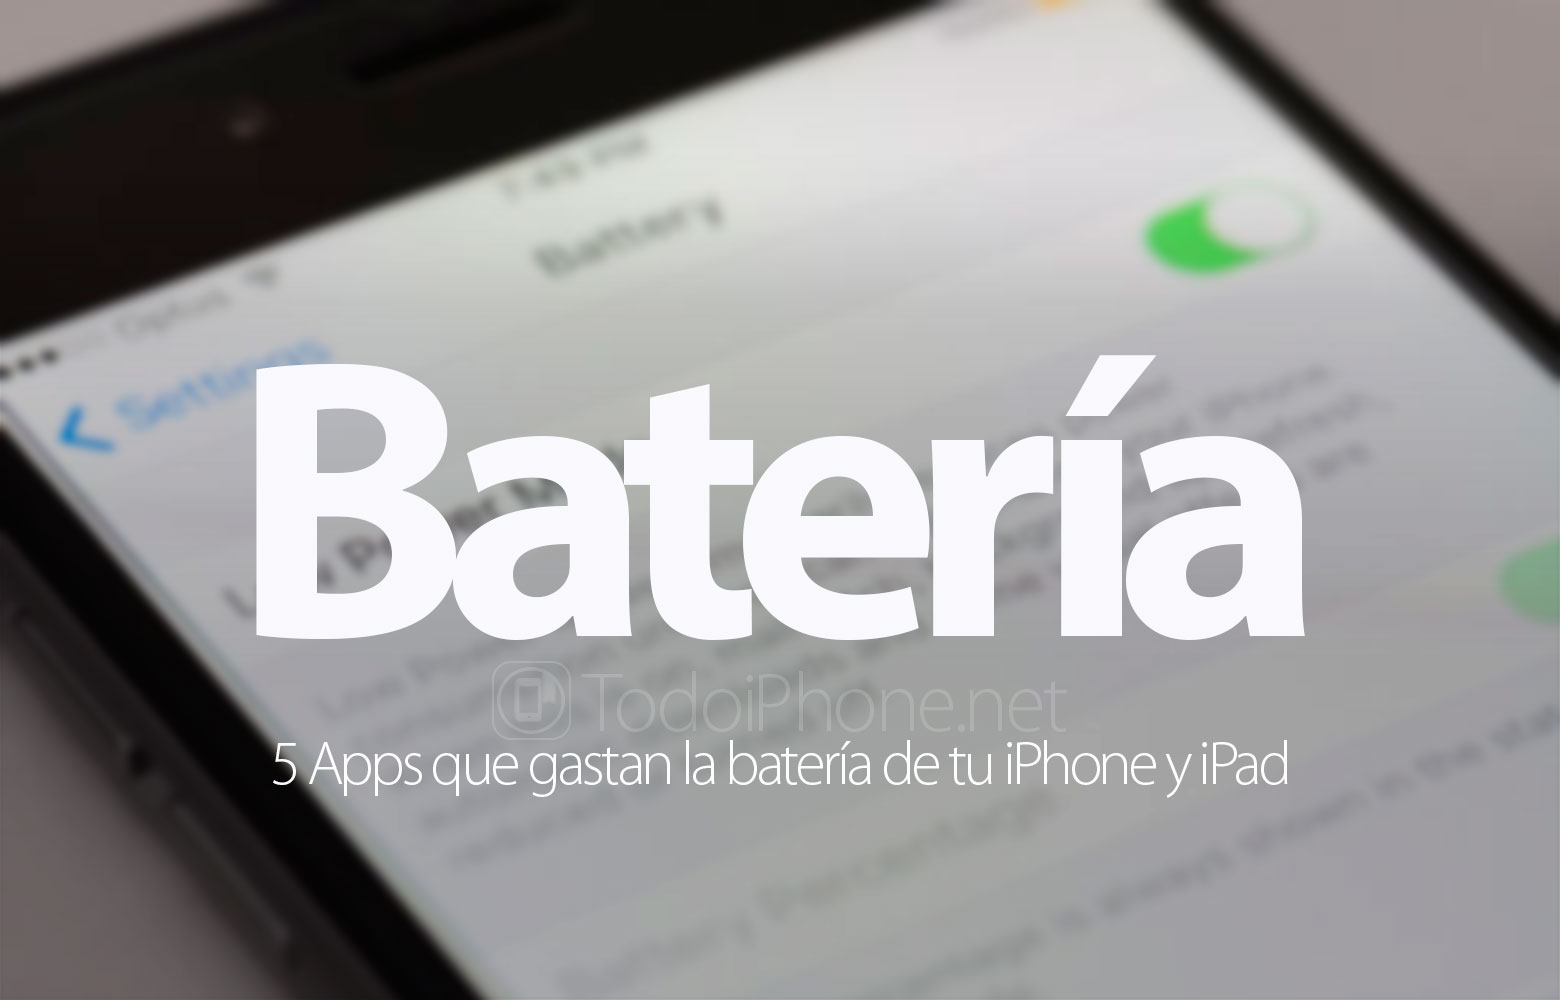 5 Apps que gastan la batería de tu iPhone y iPad